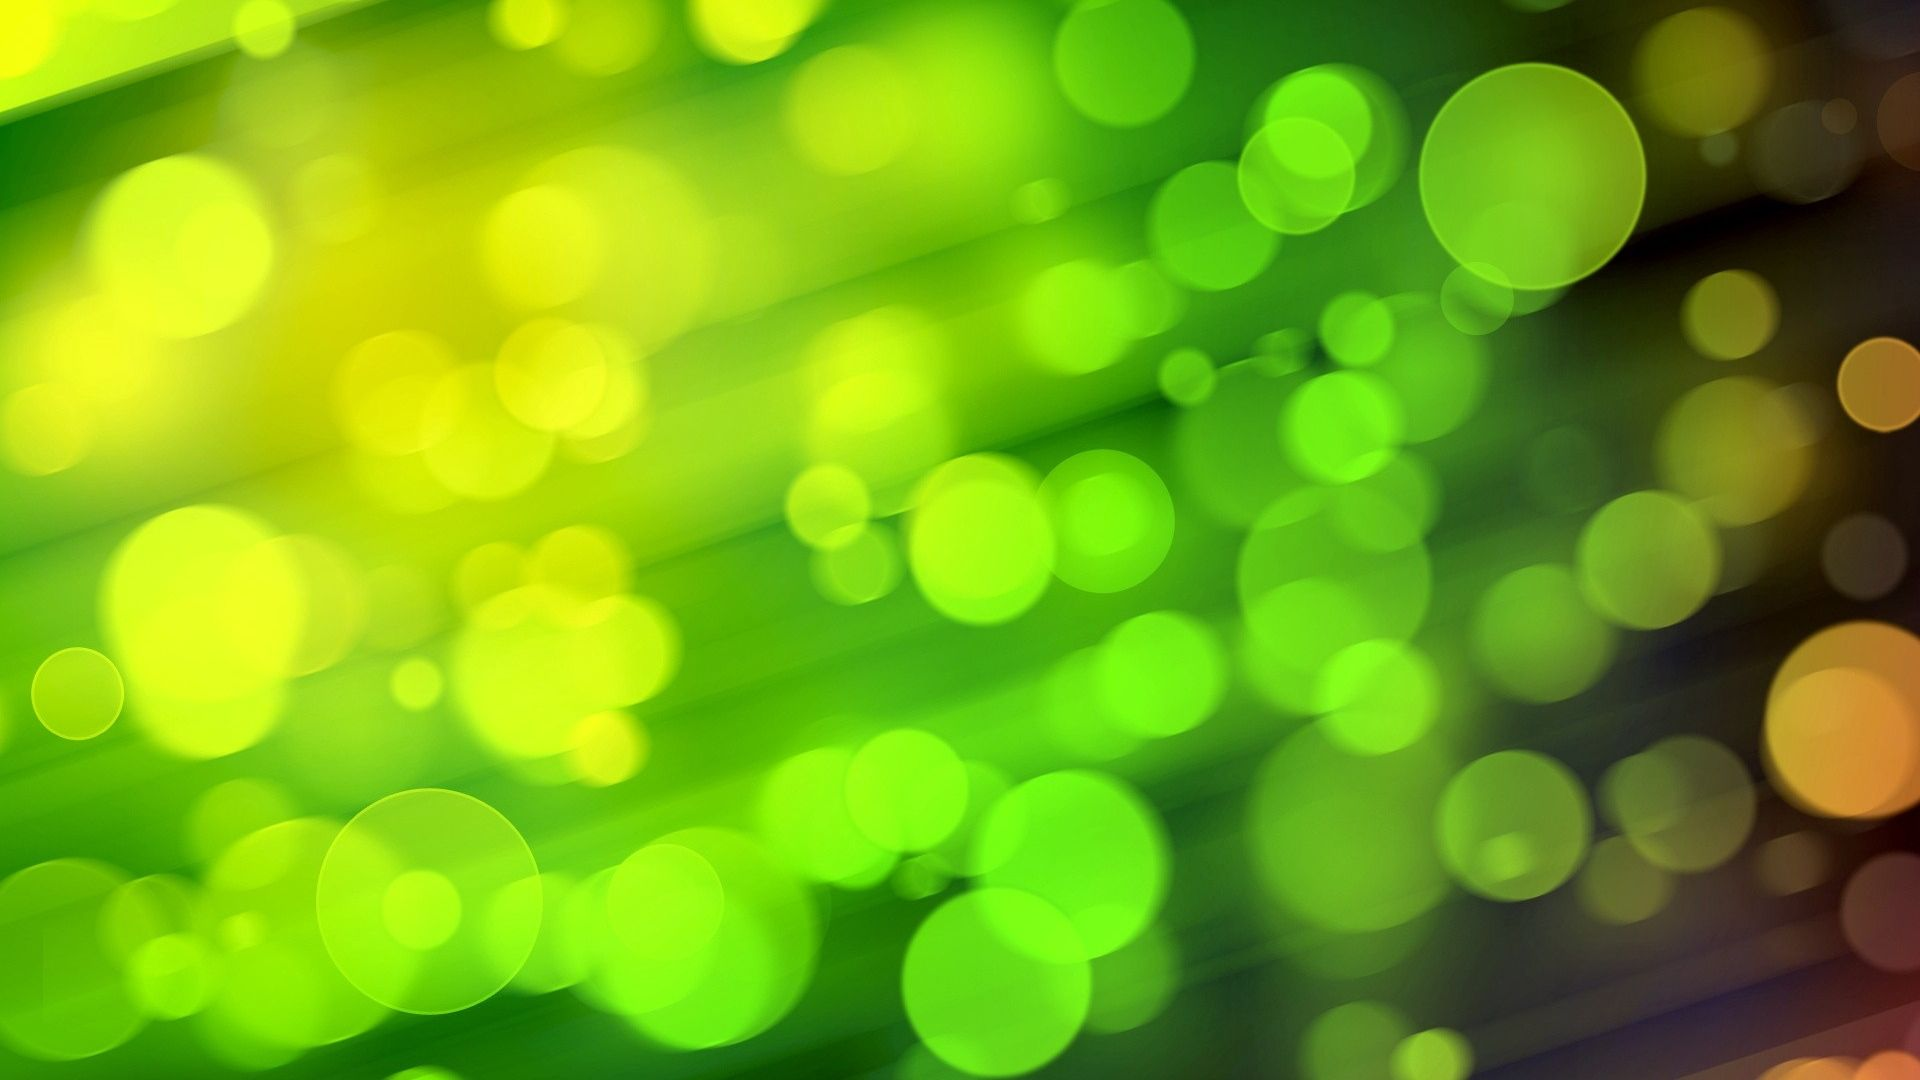 Light download free wallpapers for pc in hd